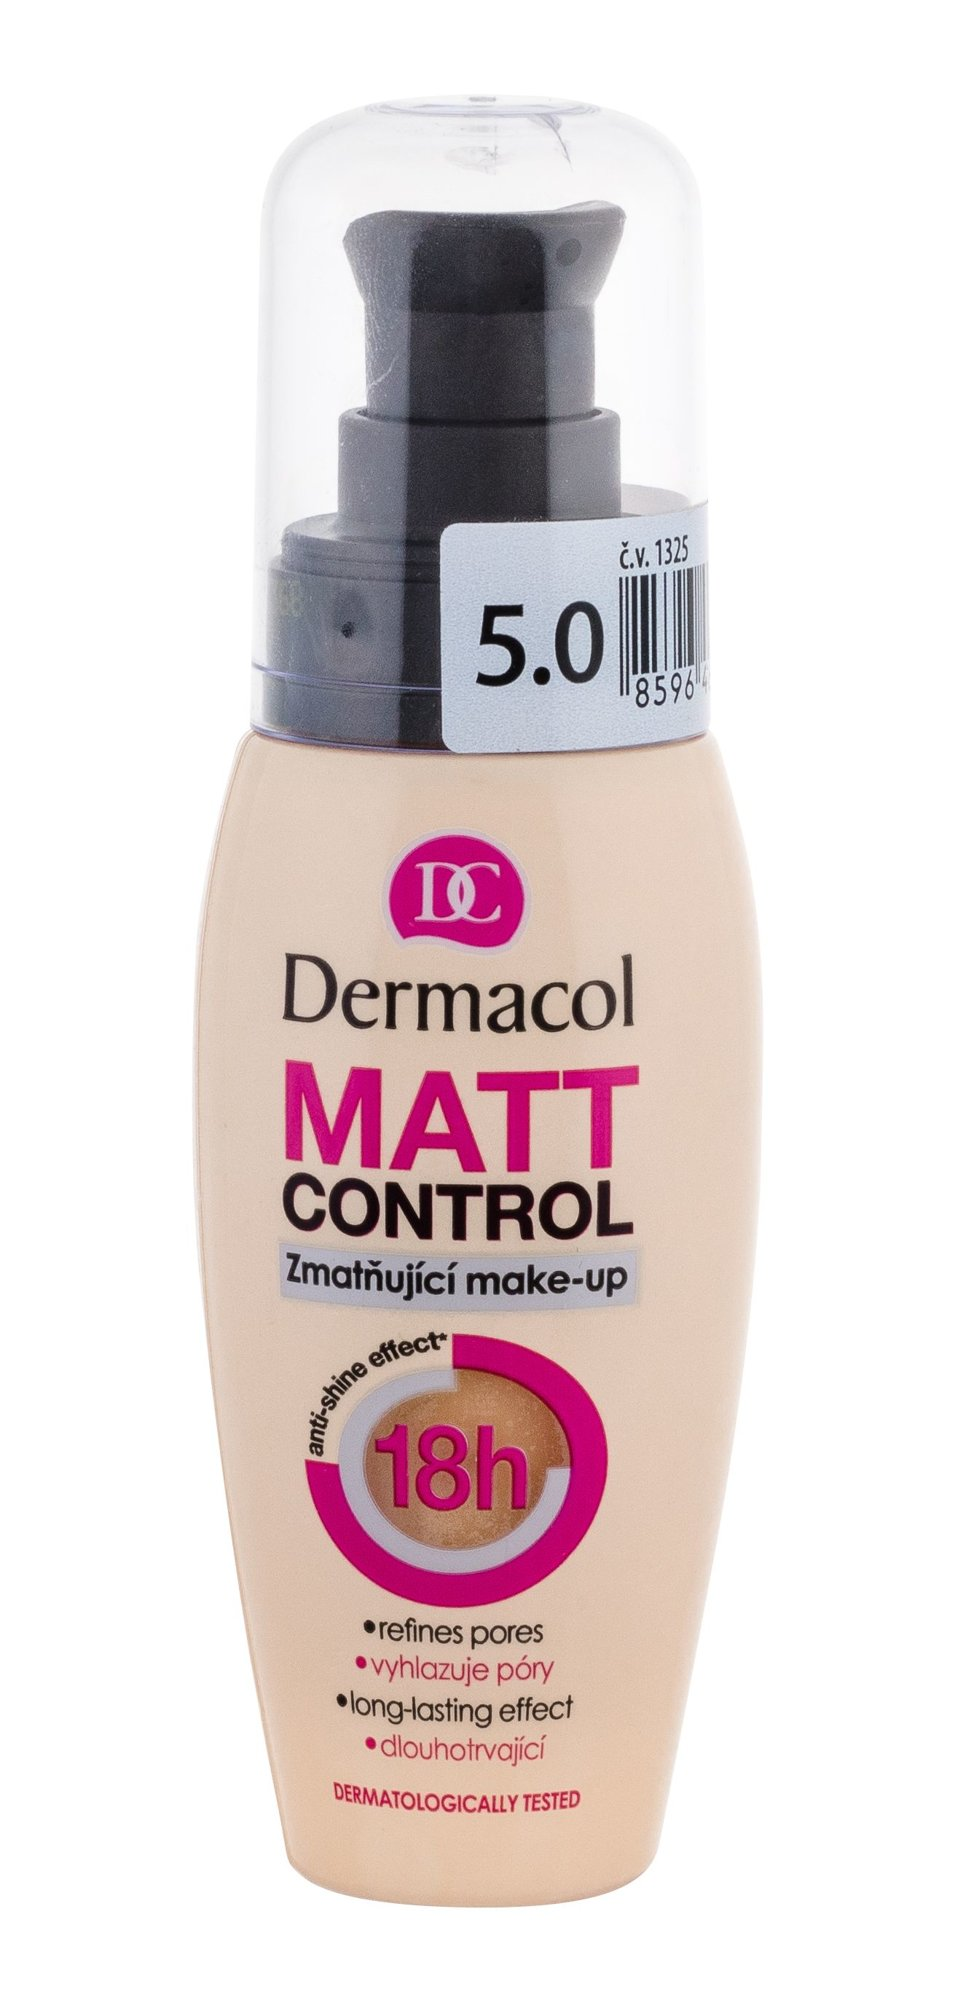 Dermacol Matt Control Makeup 30ml 5.0